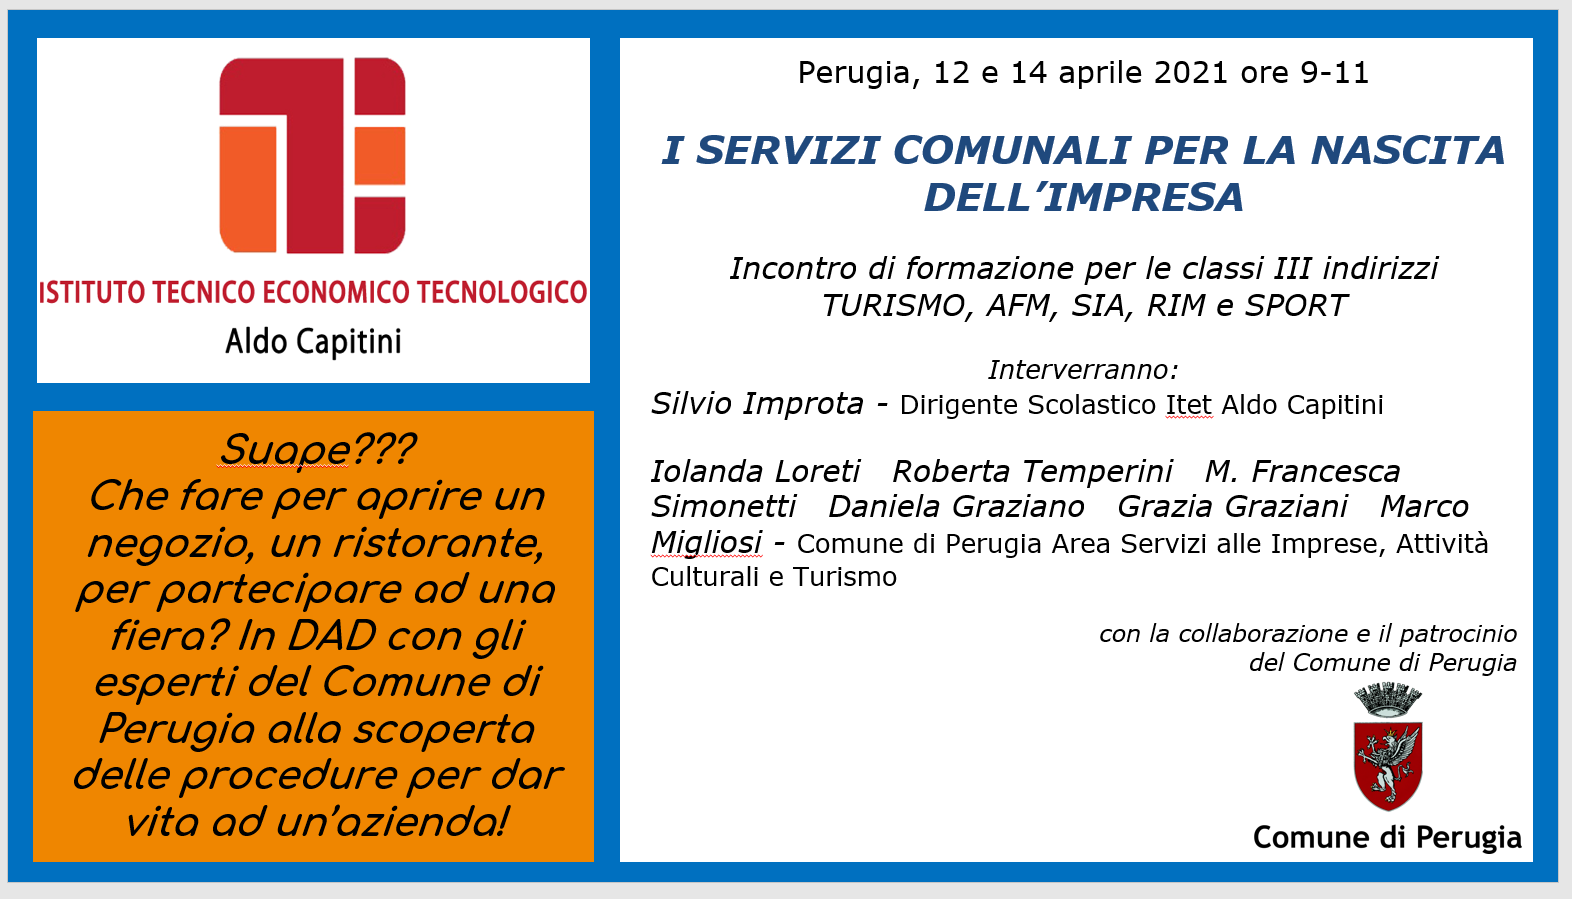 evento_comune_pg_itet_capitini.png